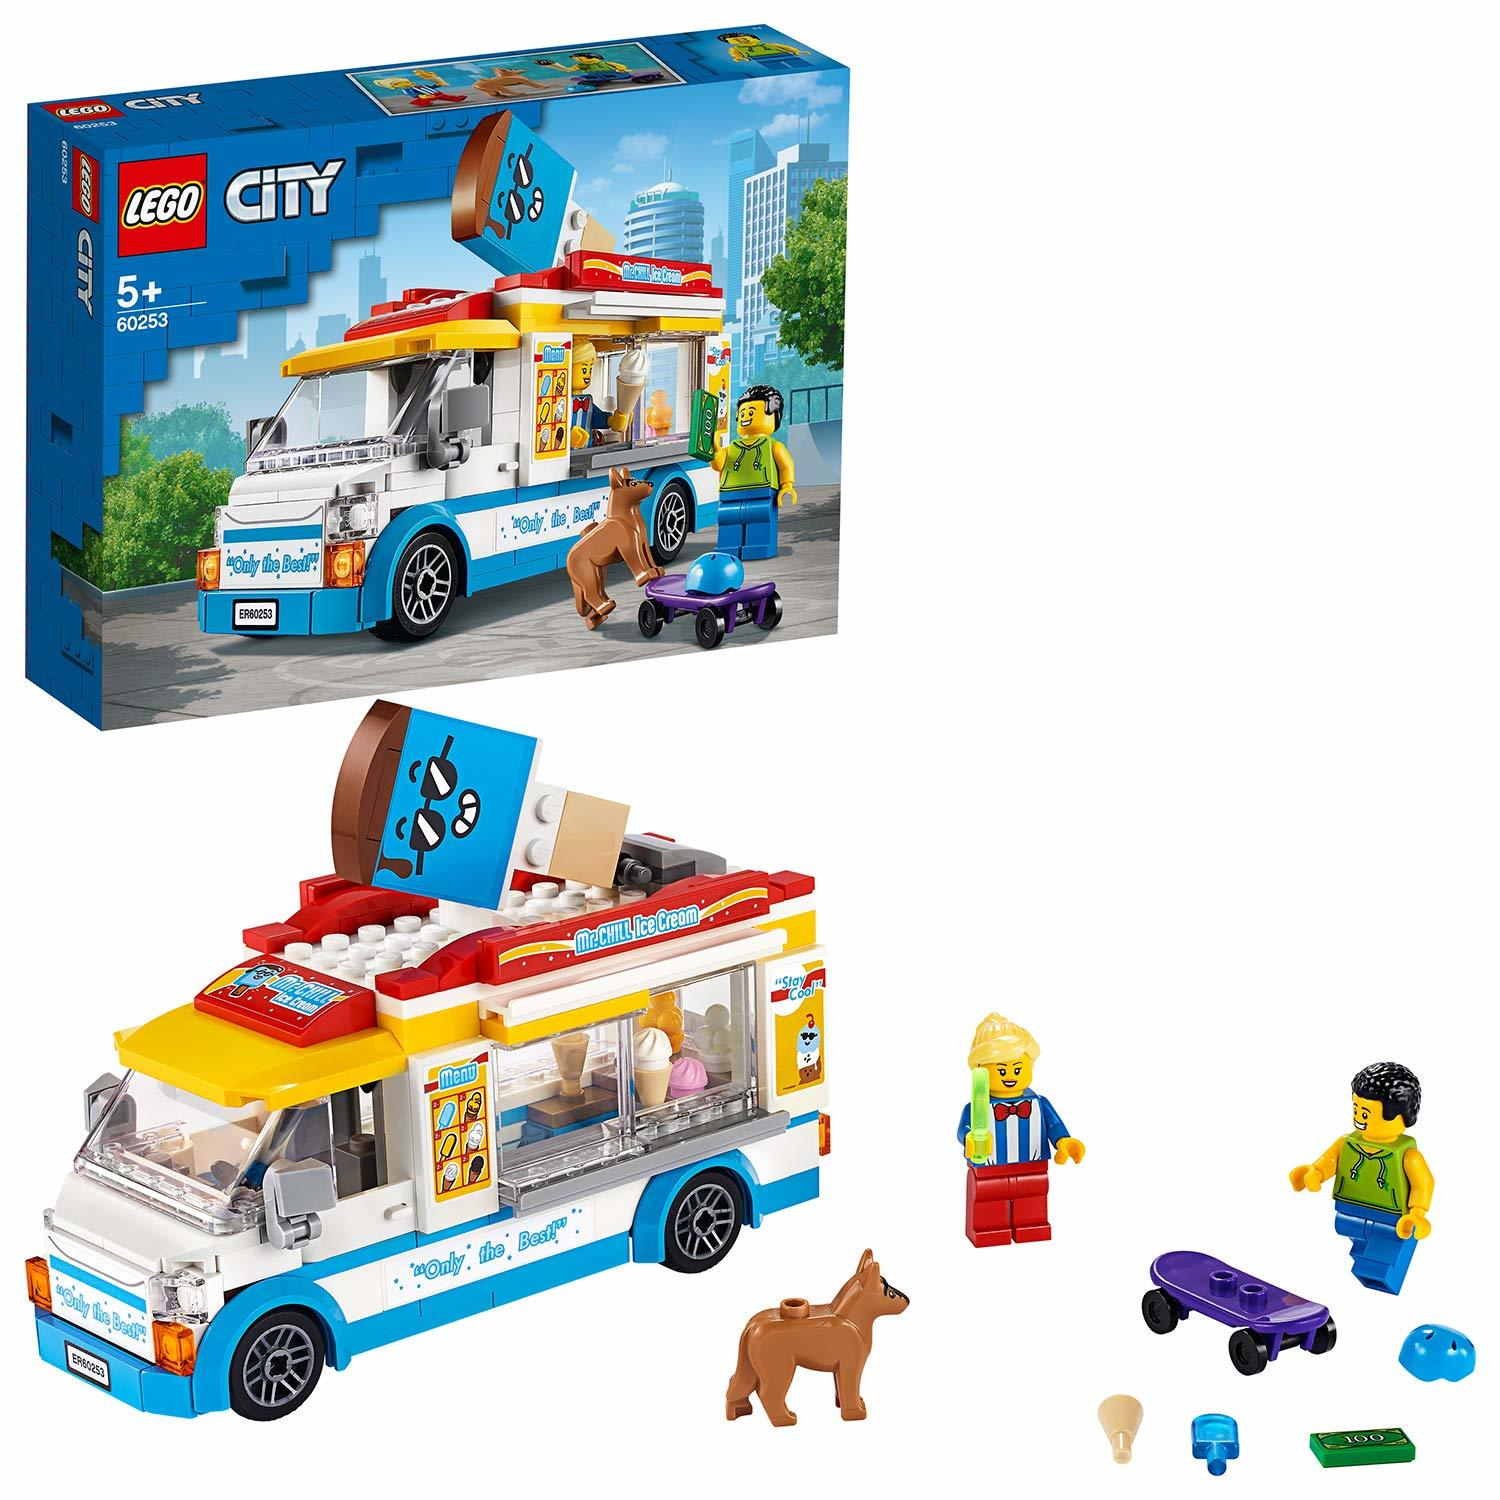 LEGO City: Ice-cream Van - (60253) image